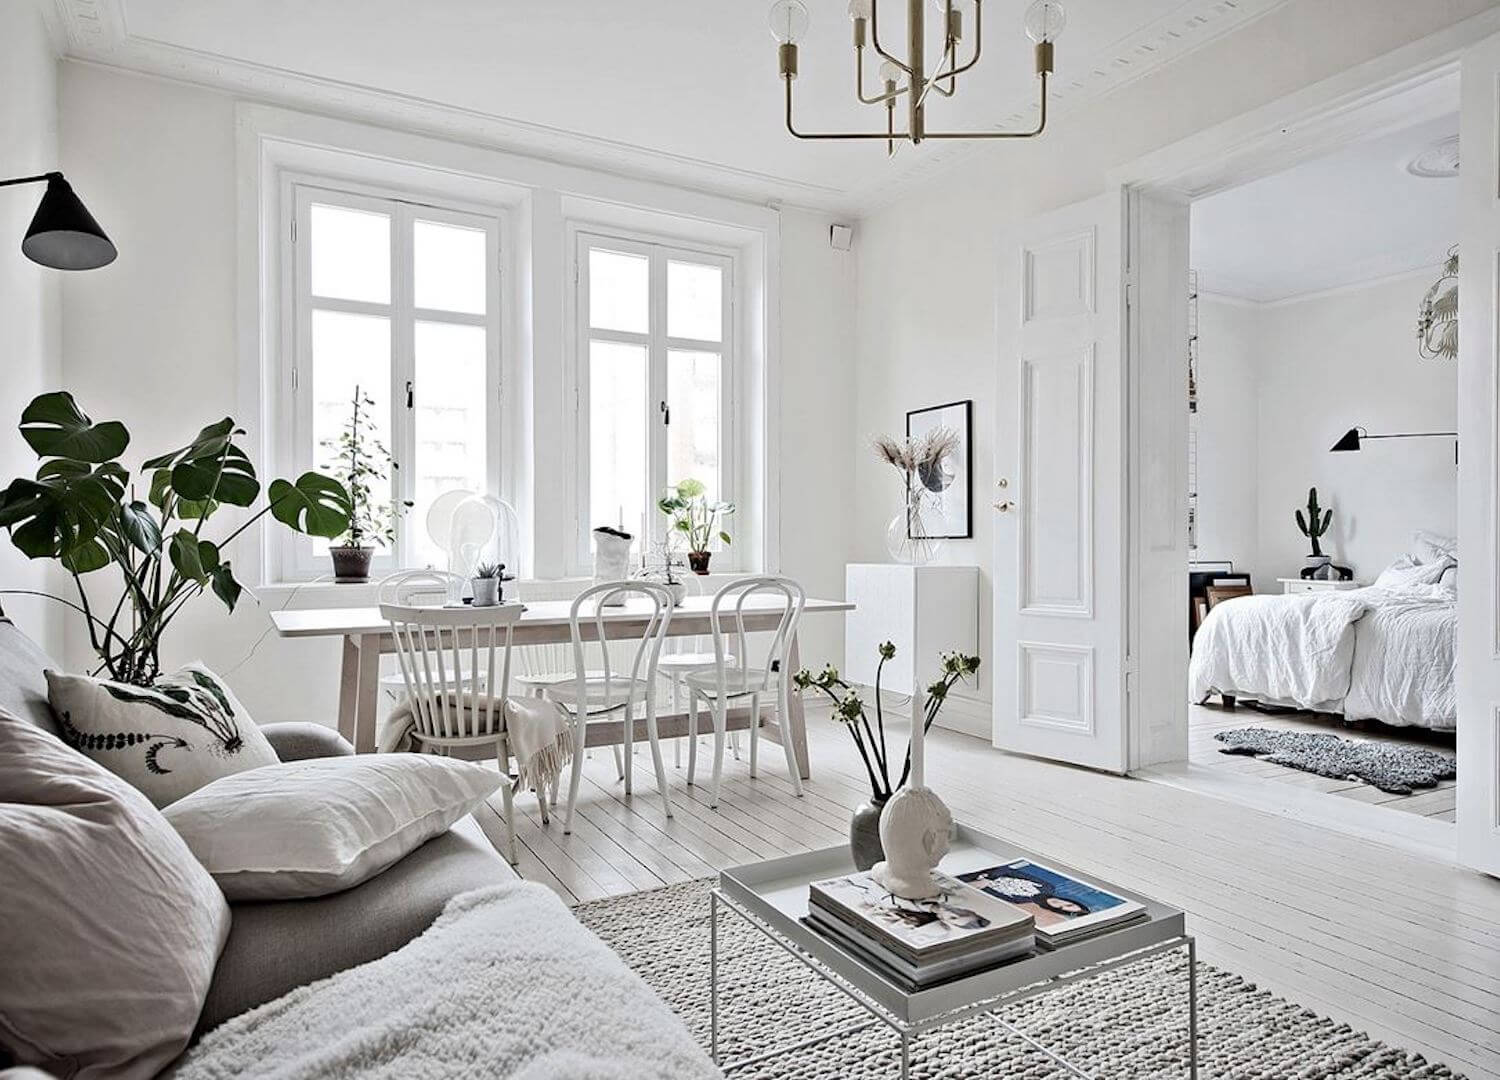 est living open house stockholm apartment 6